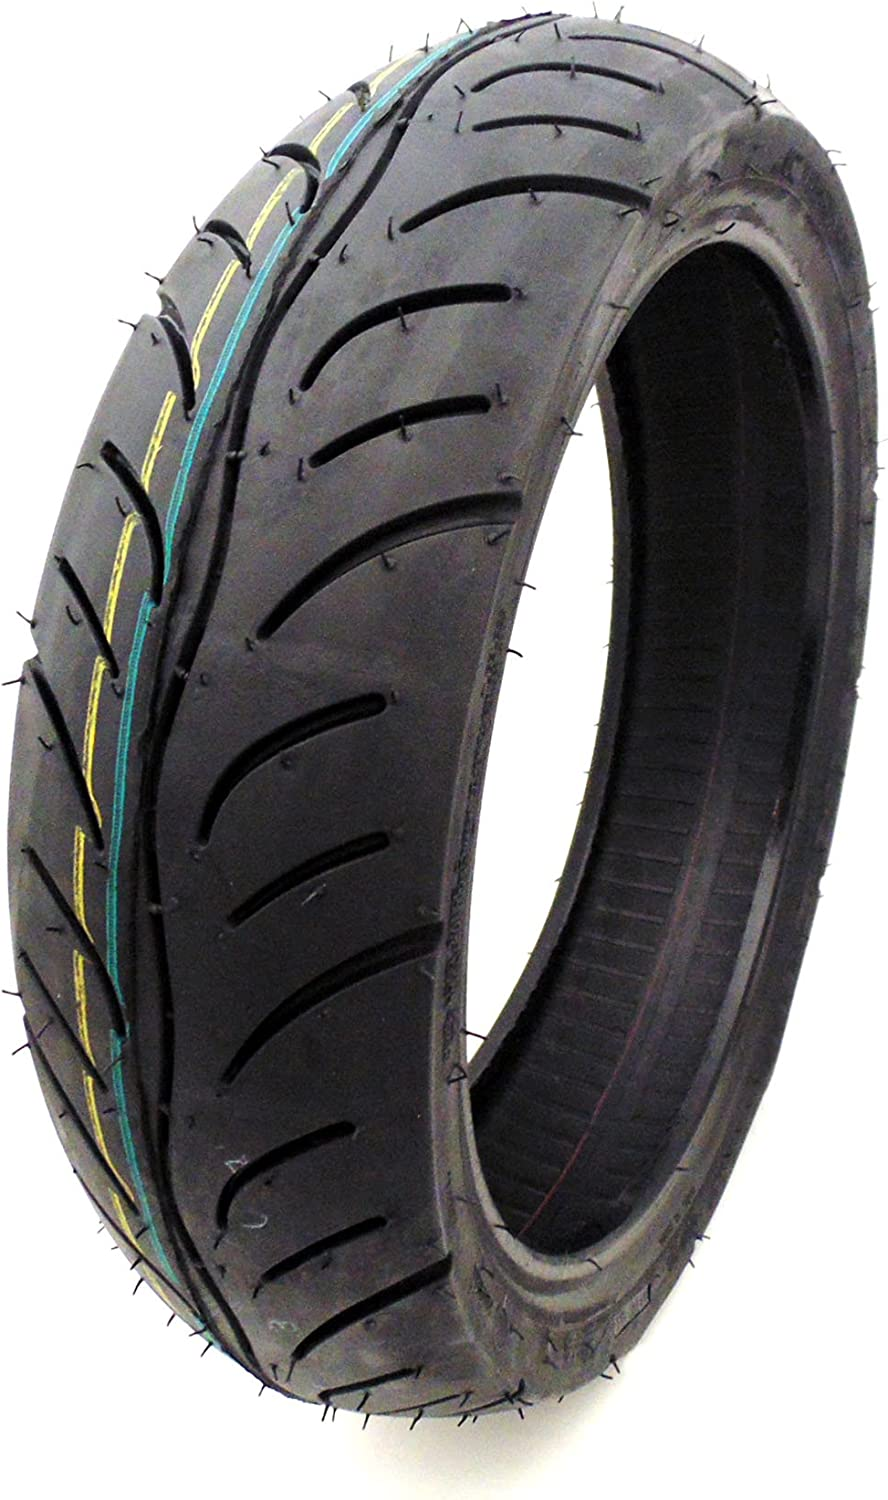 Tire 100 60-12 Tubeless Front Rear Motorcycle Scooter Moped